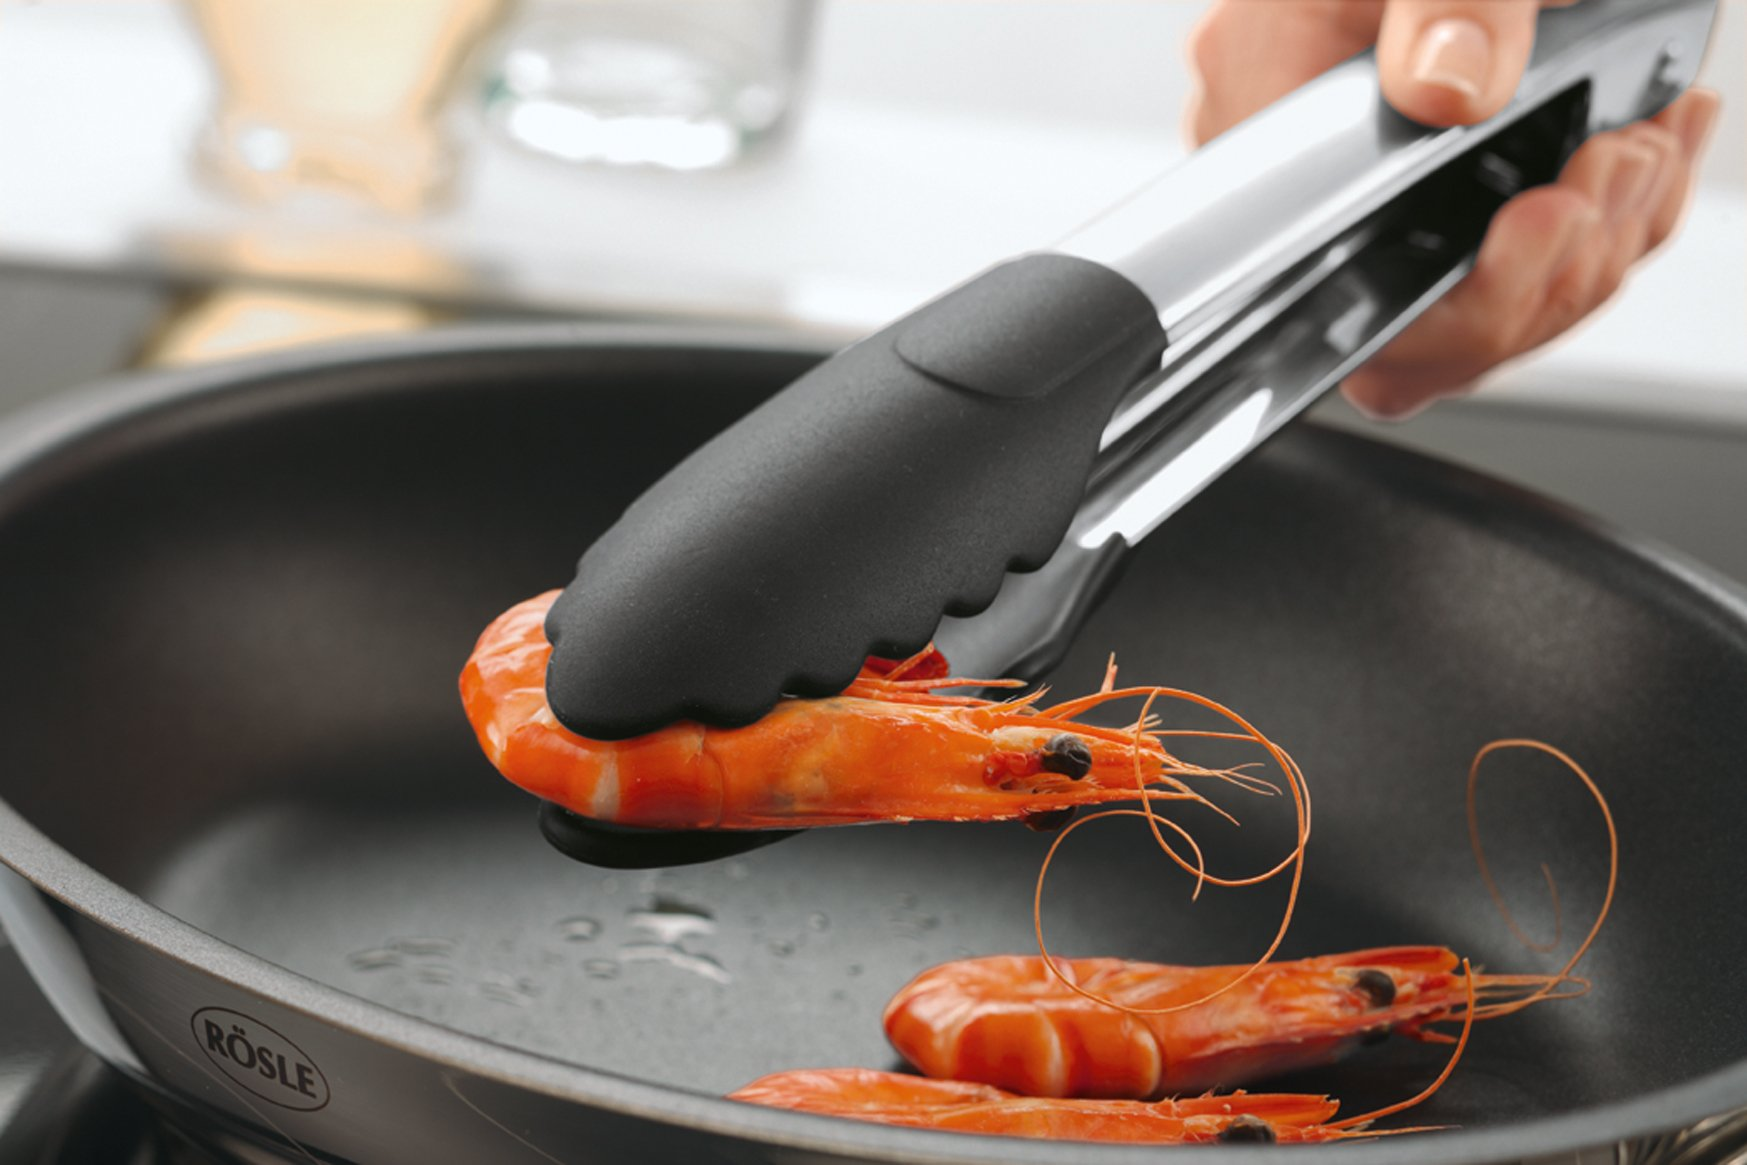 Rosle Stainless Steel Lock & Release Silicone Coated Cooking Tongs, 12-inch by Rosle (Image #4)